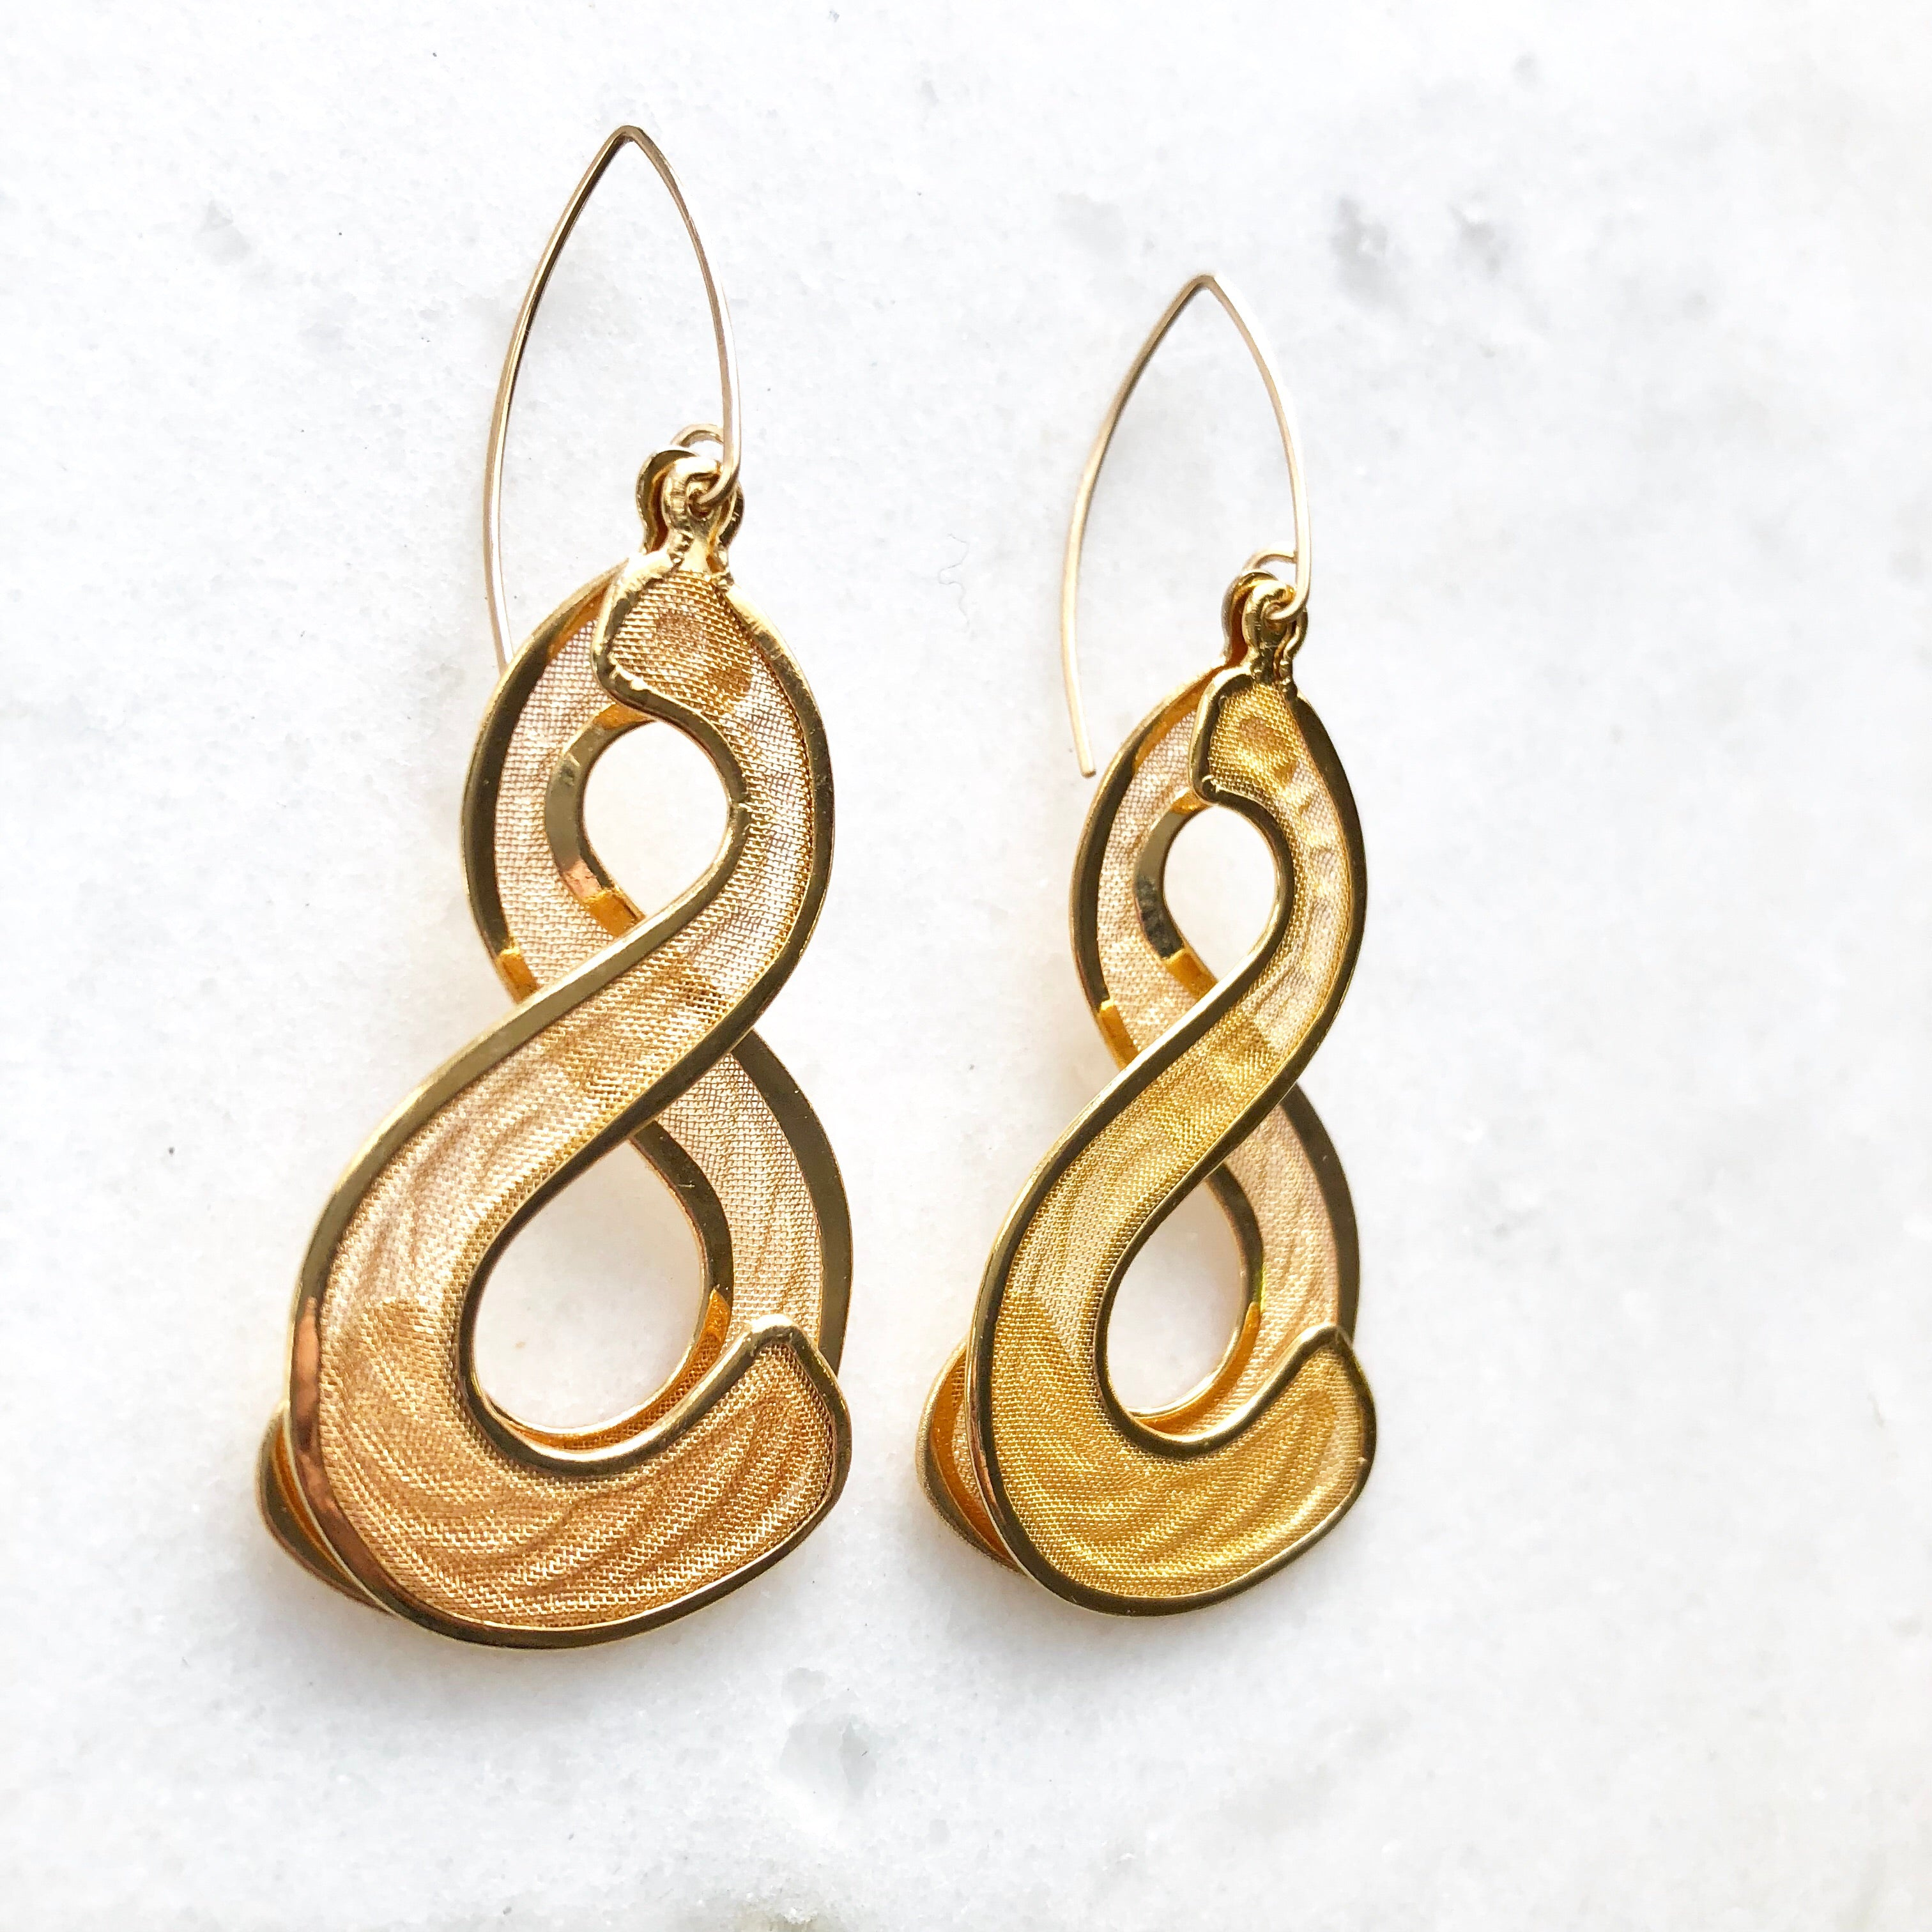 Ampersand Earrings